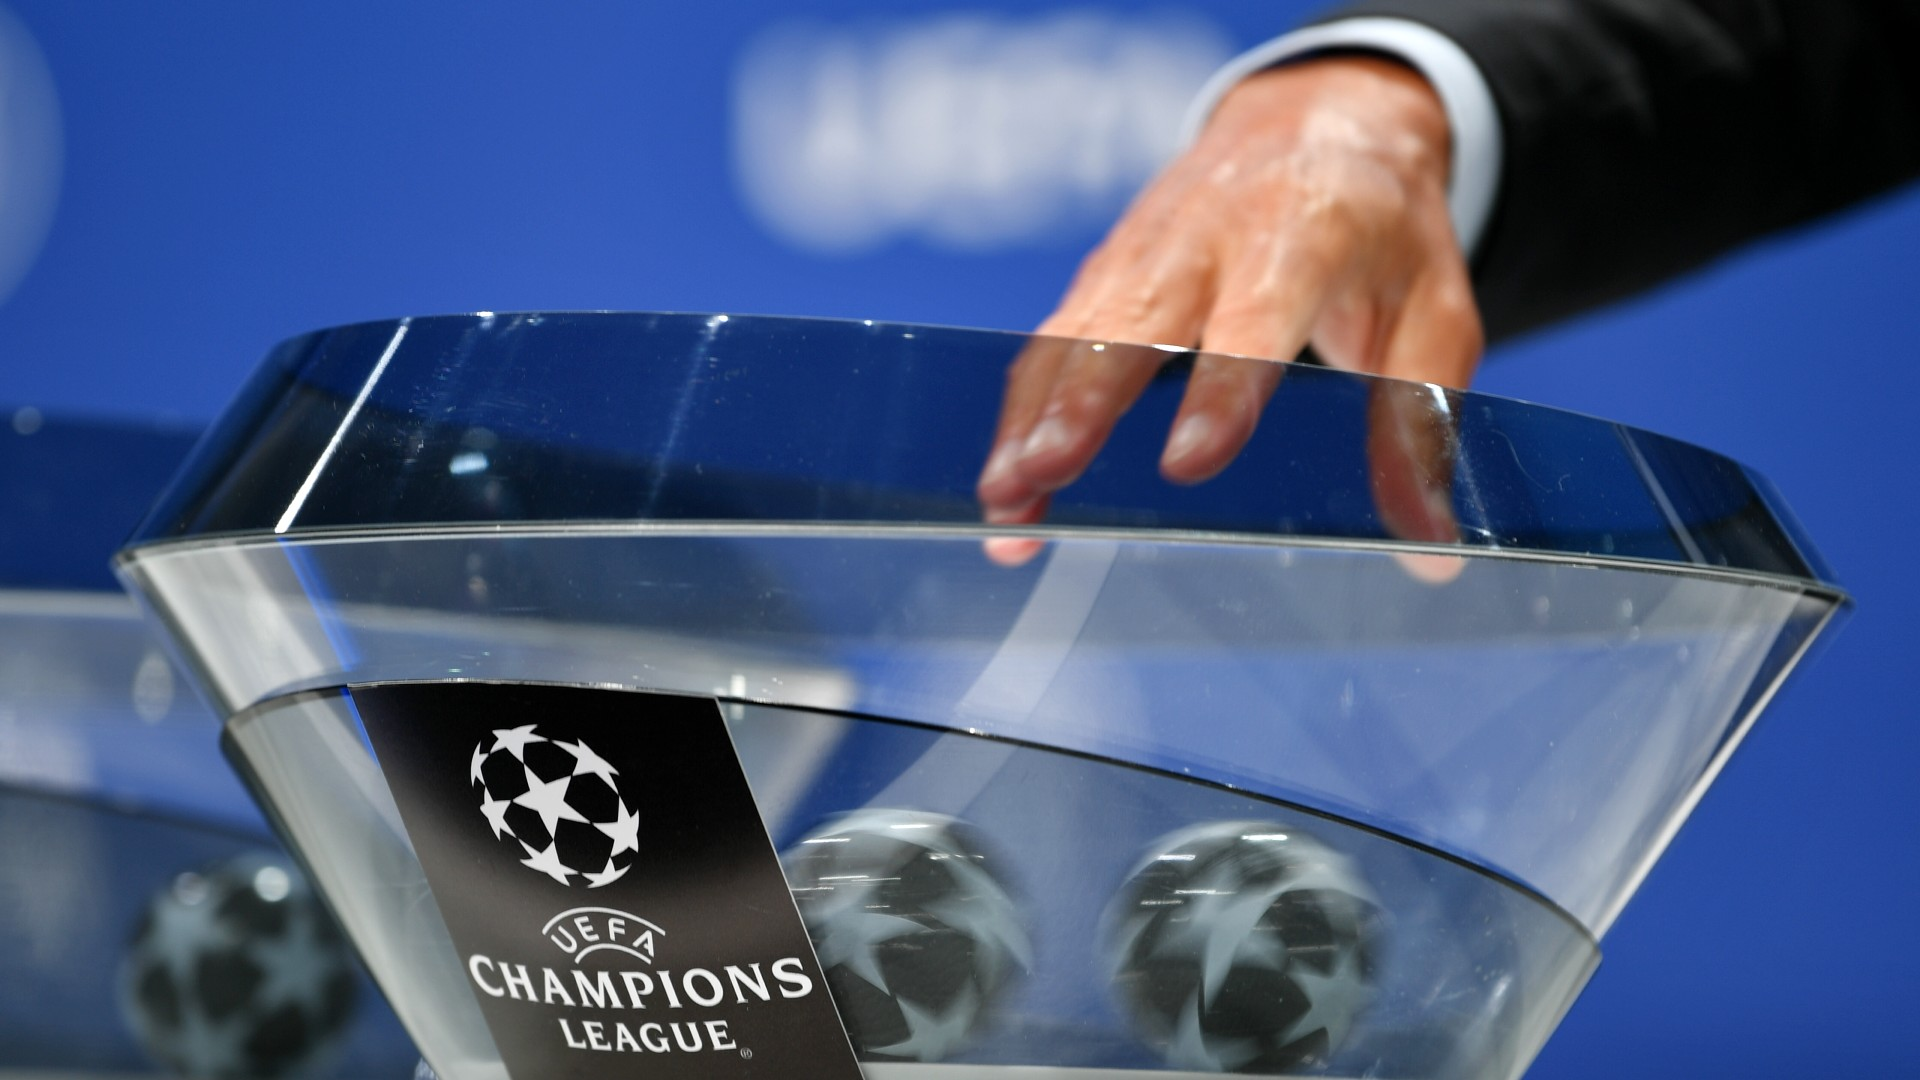 When is the Champions League draw? How to watch 2021 UCL group stage reveal in USA